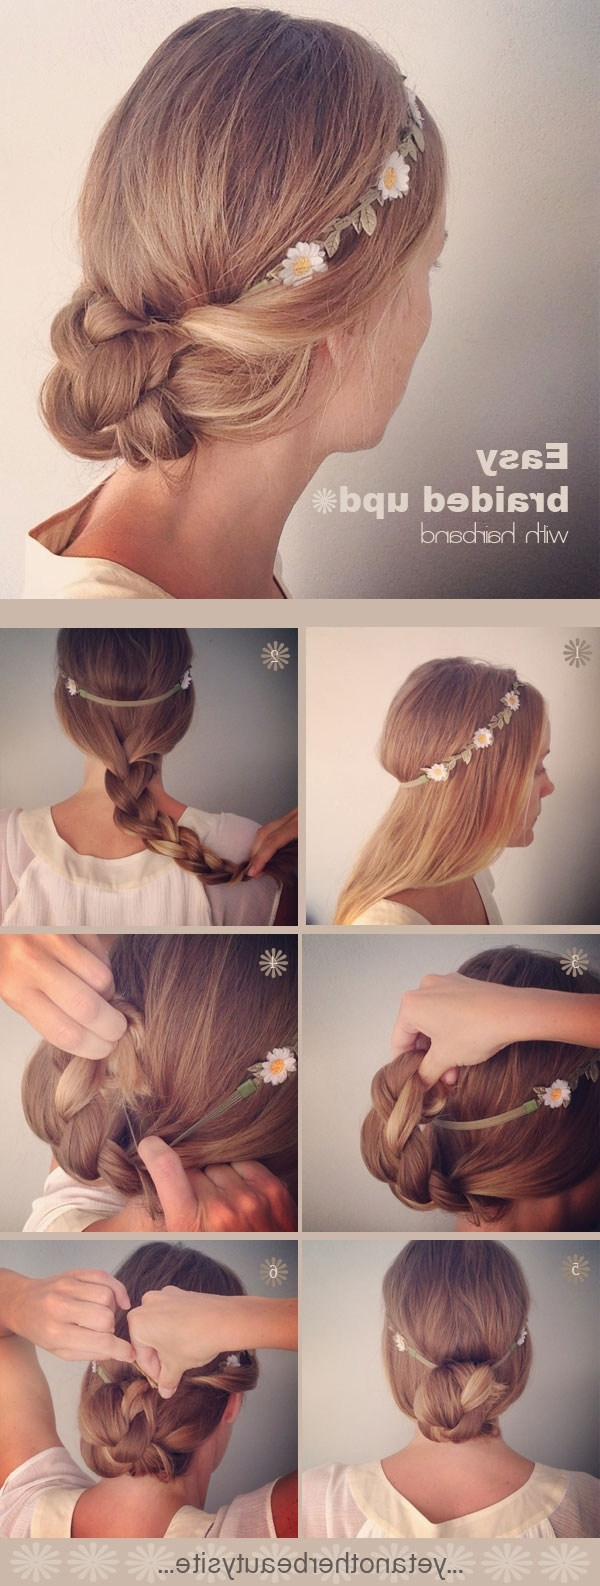 Well Known Diy Wedding Updos For Long Hair In 20 Diy Wedding Hairstyles With Tutorials To Try On Your Own (View 15 of 15)